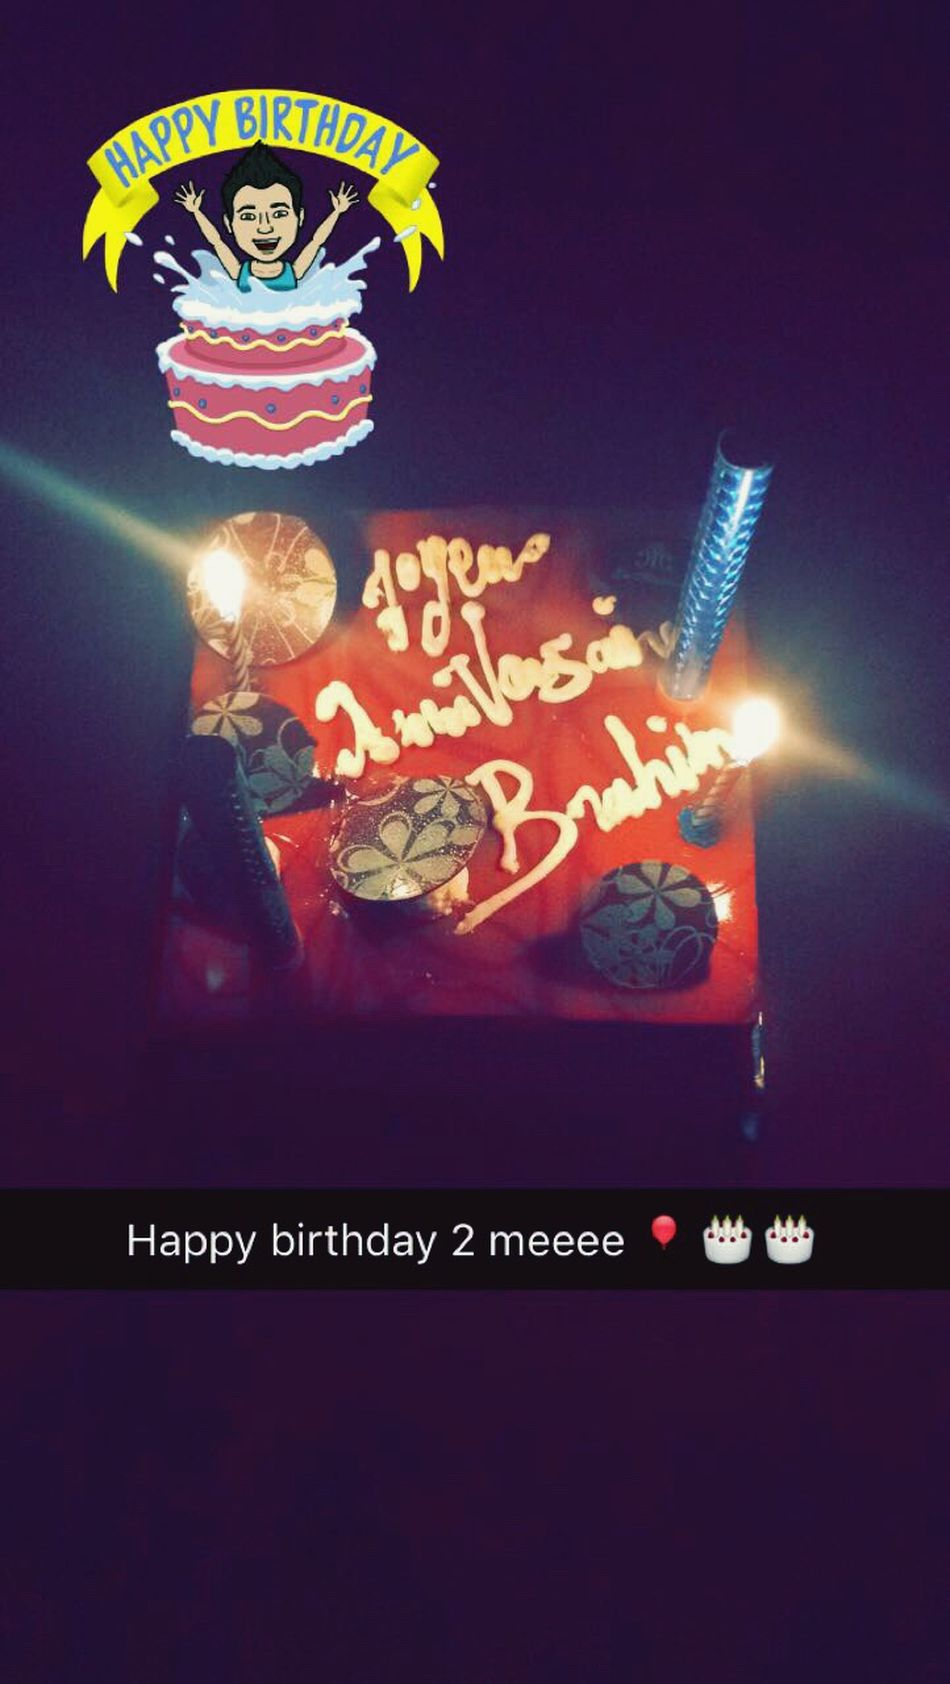 I feel young 👦🏻 ..age is just a number.....that's my birthday 🎂theory.🎈😊😘 Birthday Young Number Theory Age Birthday Cake Birthday Party Birthdays Birthdaycake Birthday Celebration!